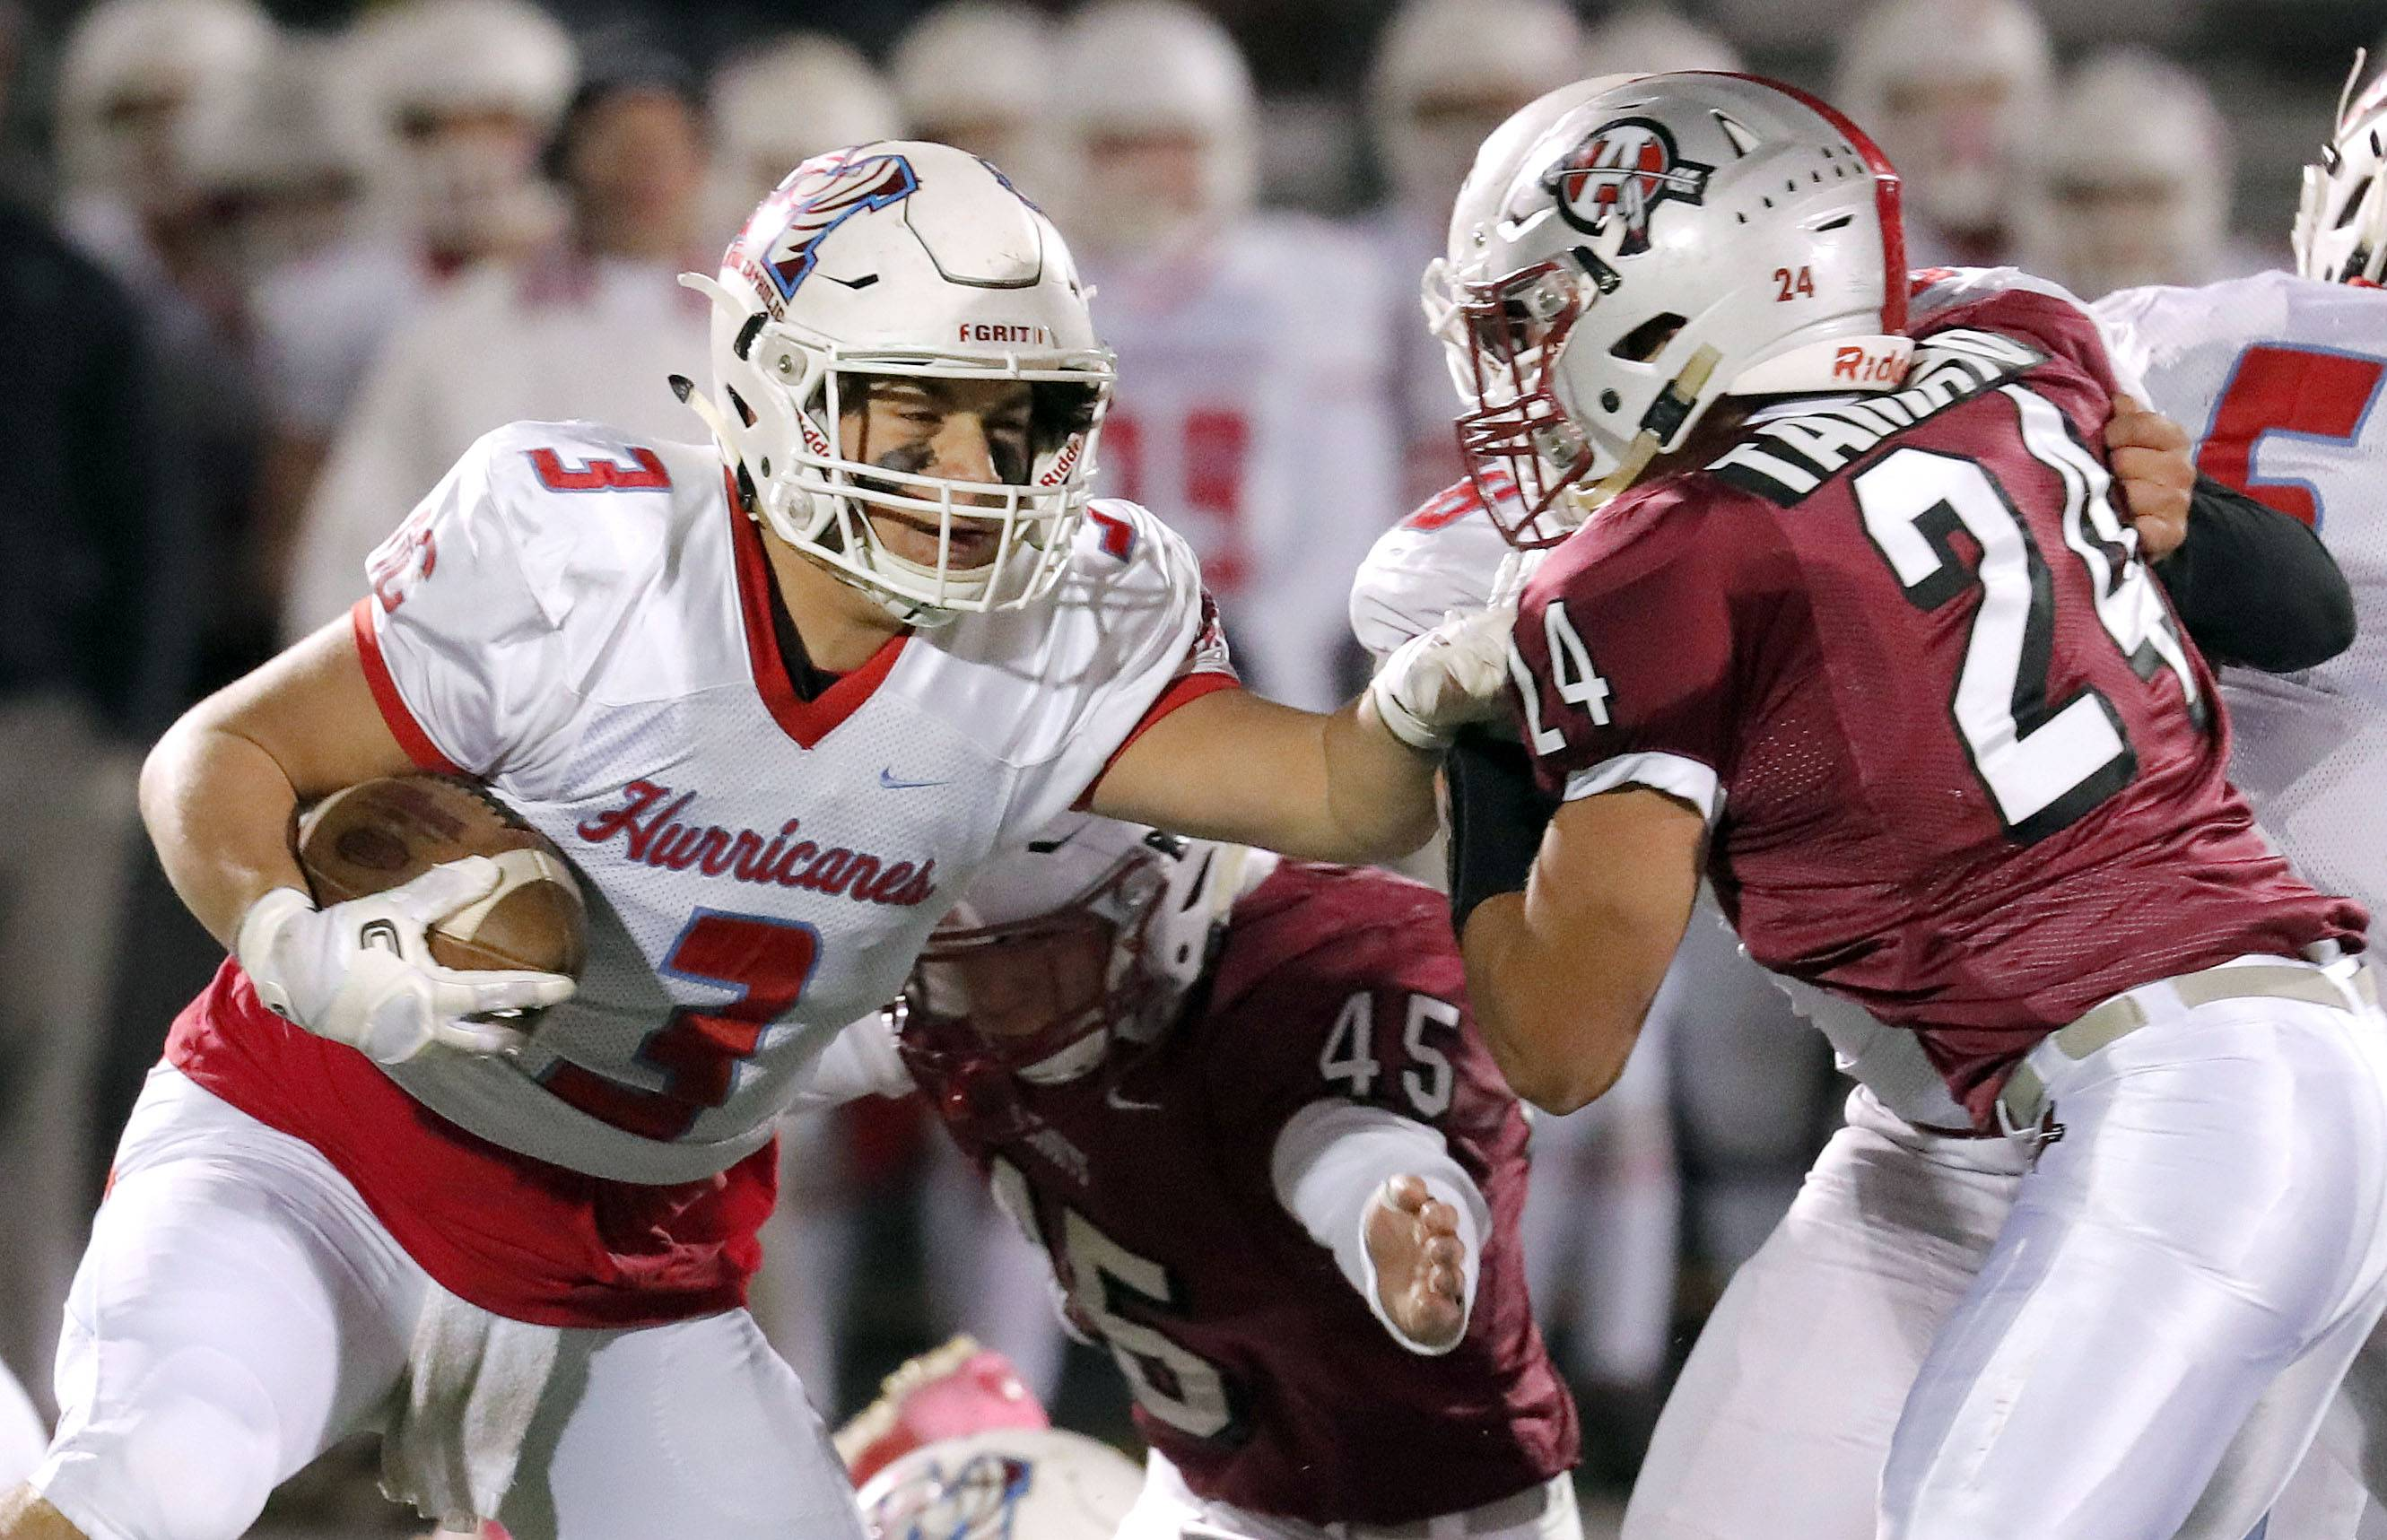 Marian Central's Pasquale Ricciardi (3) tries to get around Kevin Tamayo during Class 5A first-round playoff action Friday in Antioch.